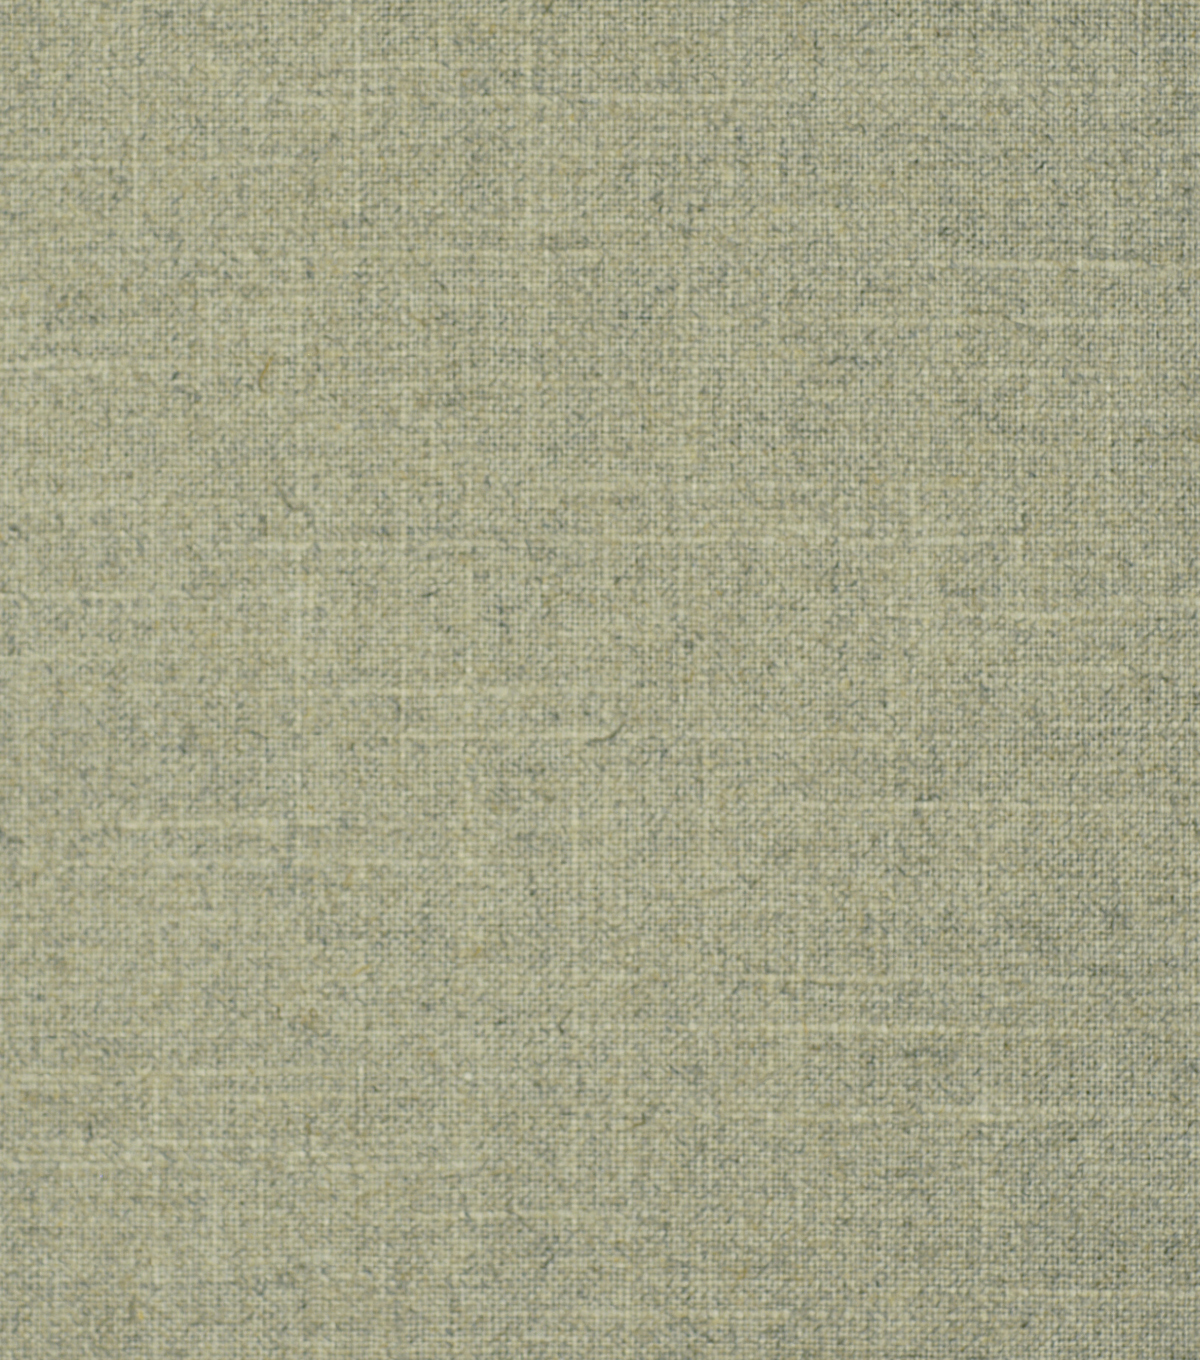 Home Decor 8\u0022x8\u0022 Fabric Swatch-Linen Duck Wash / Natural